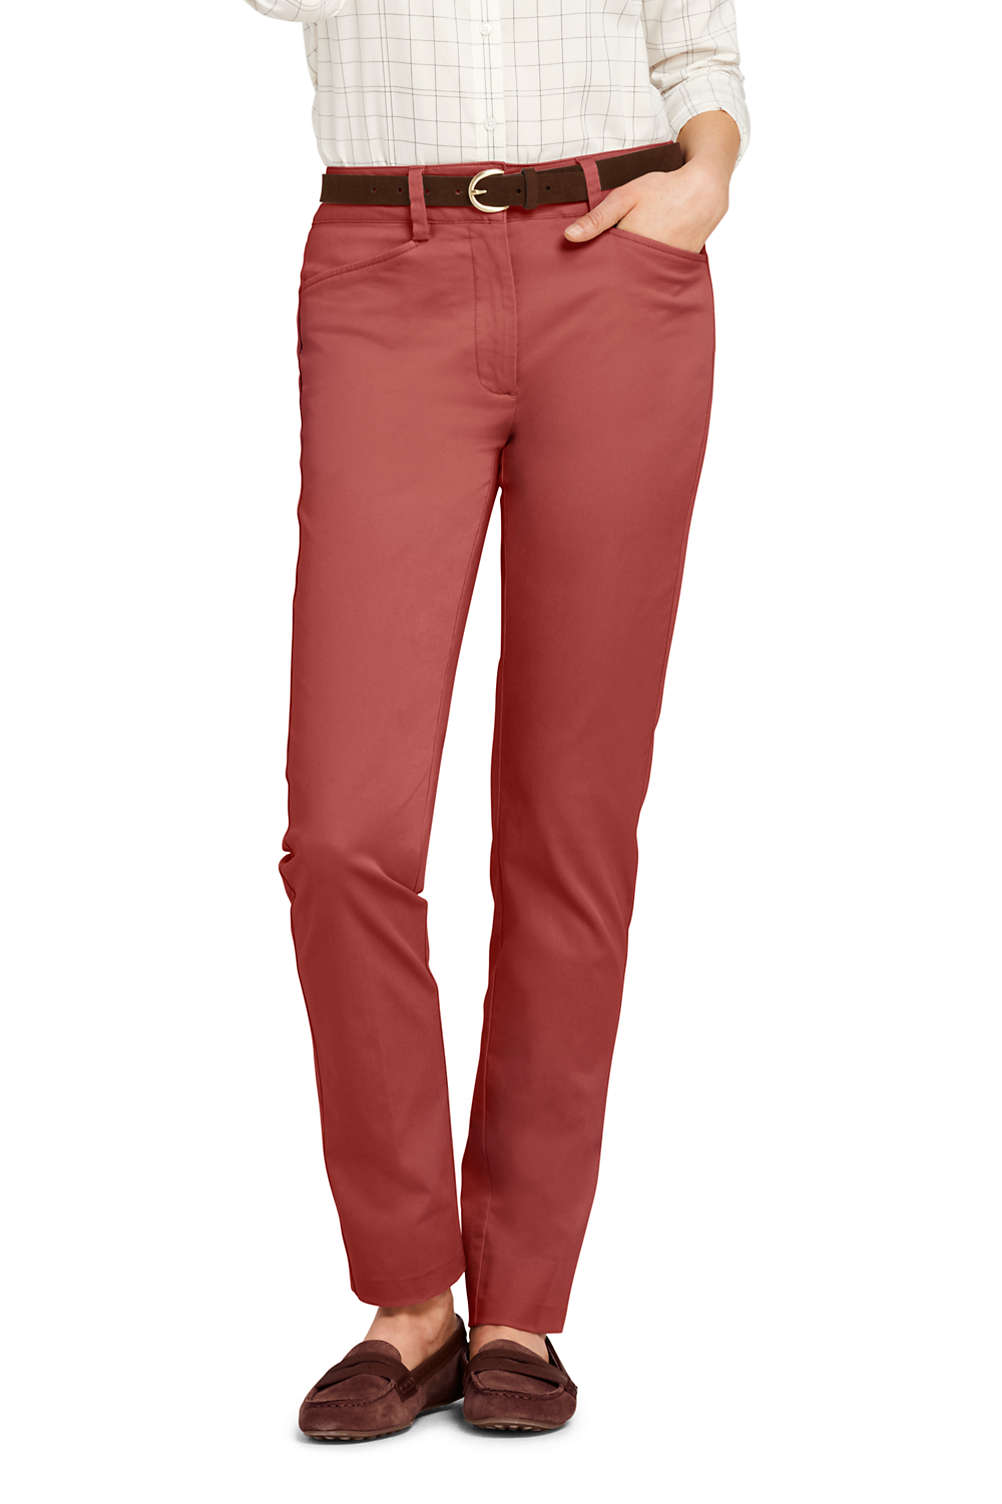 d08bf0c3ac4 Women's Chino Mid Rise Straight Leg Pants from Lands' End